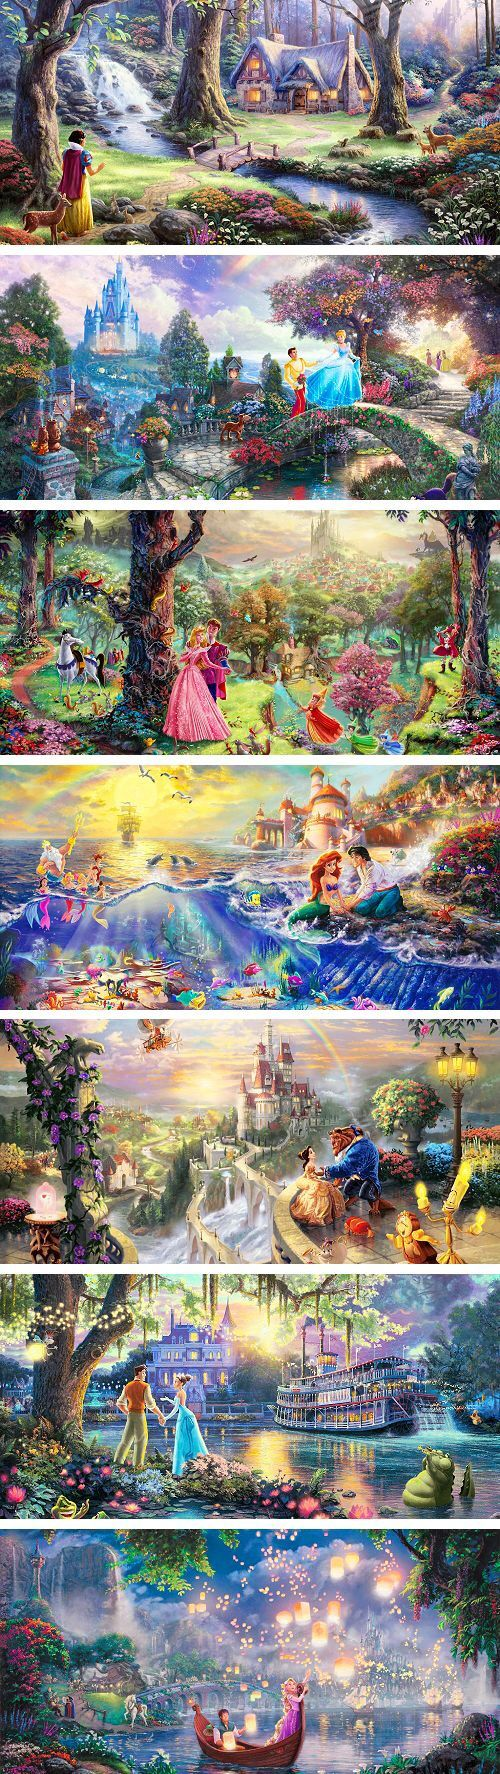 I absolutely LOVE the Tangled one! Thomas Kincaide. I live how they hide stuff in the paintings!